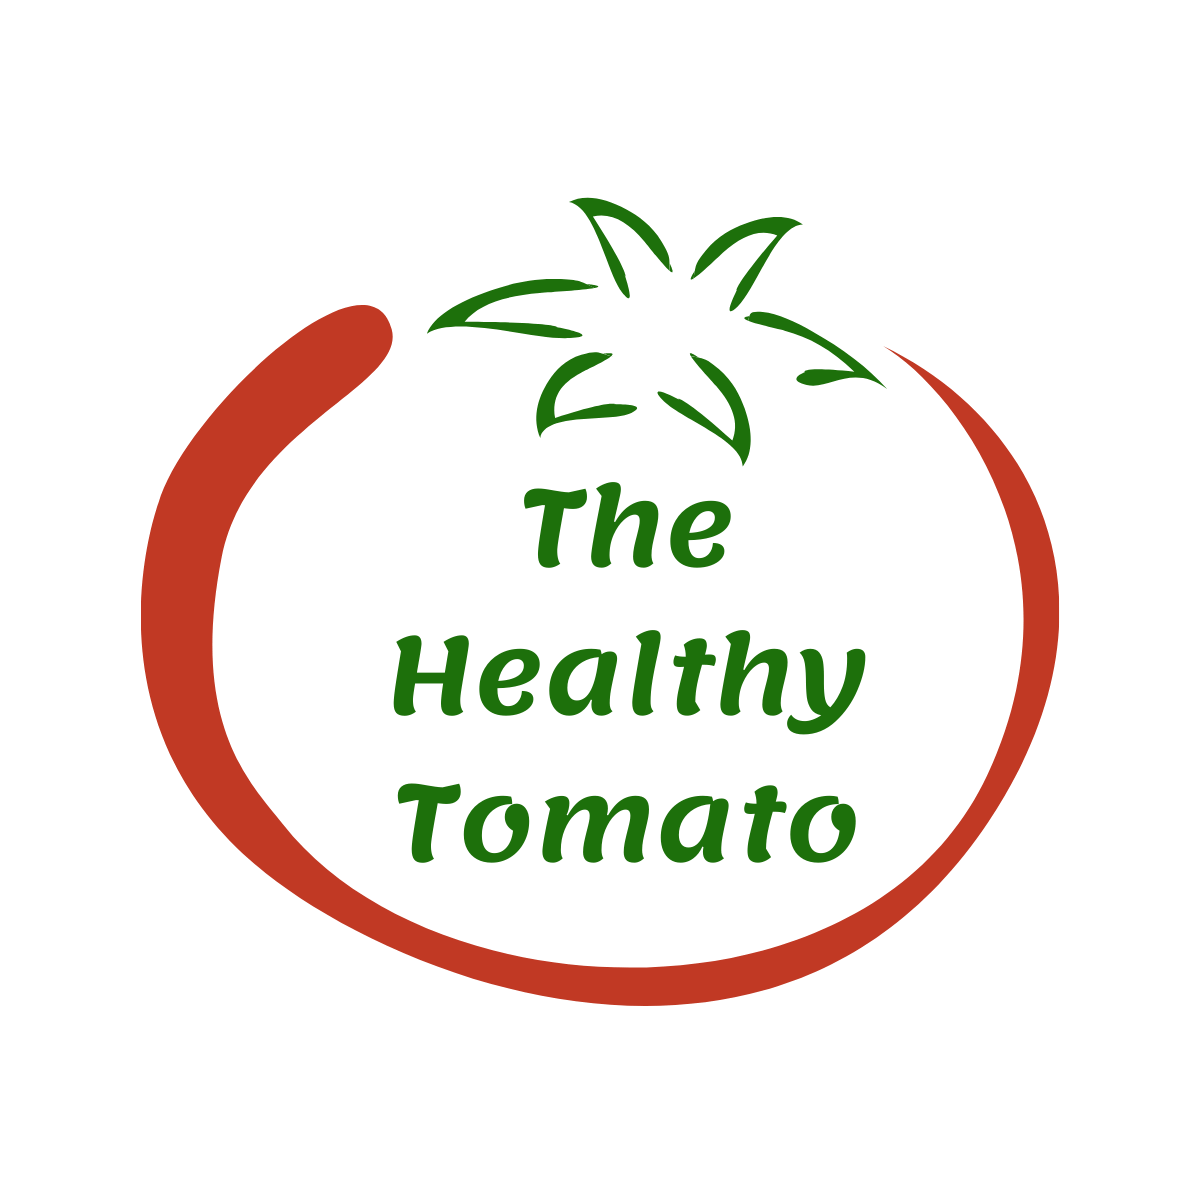 The Healthy Tomato